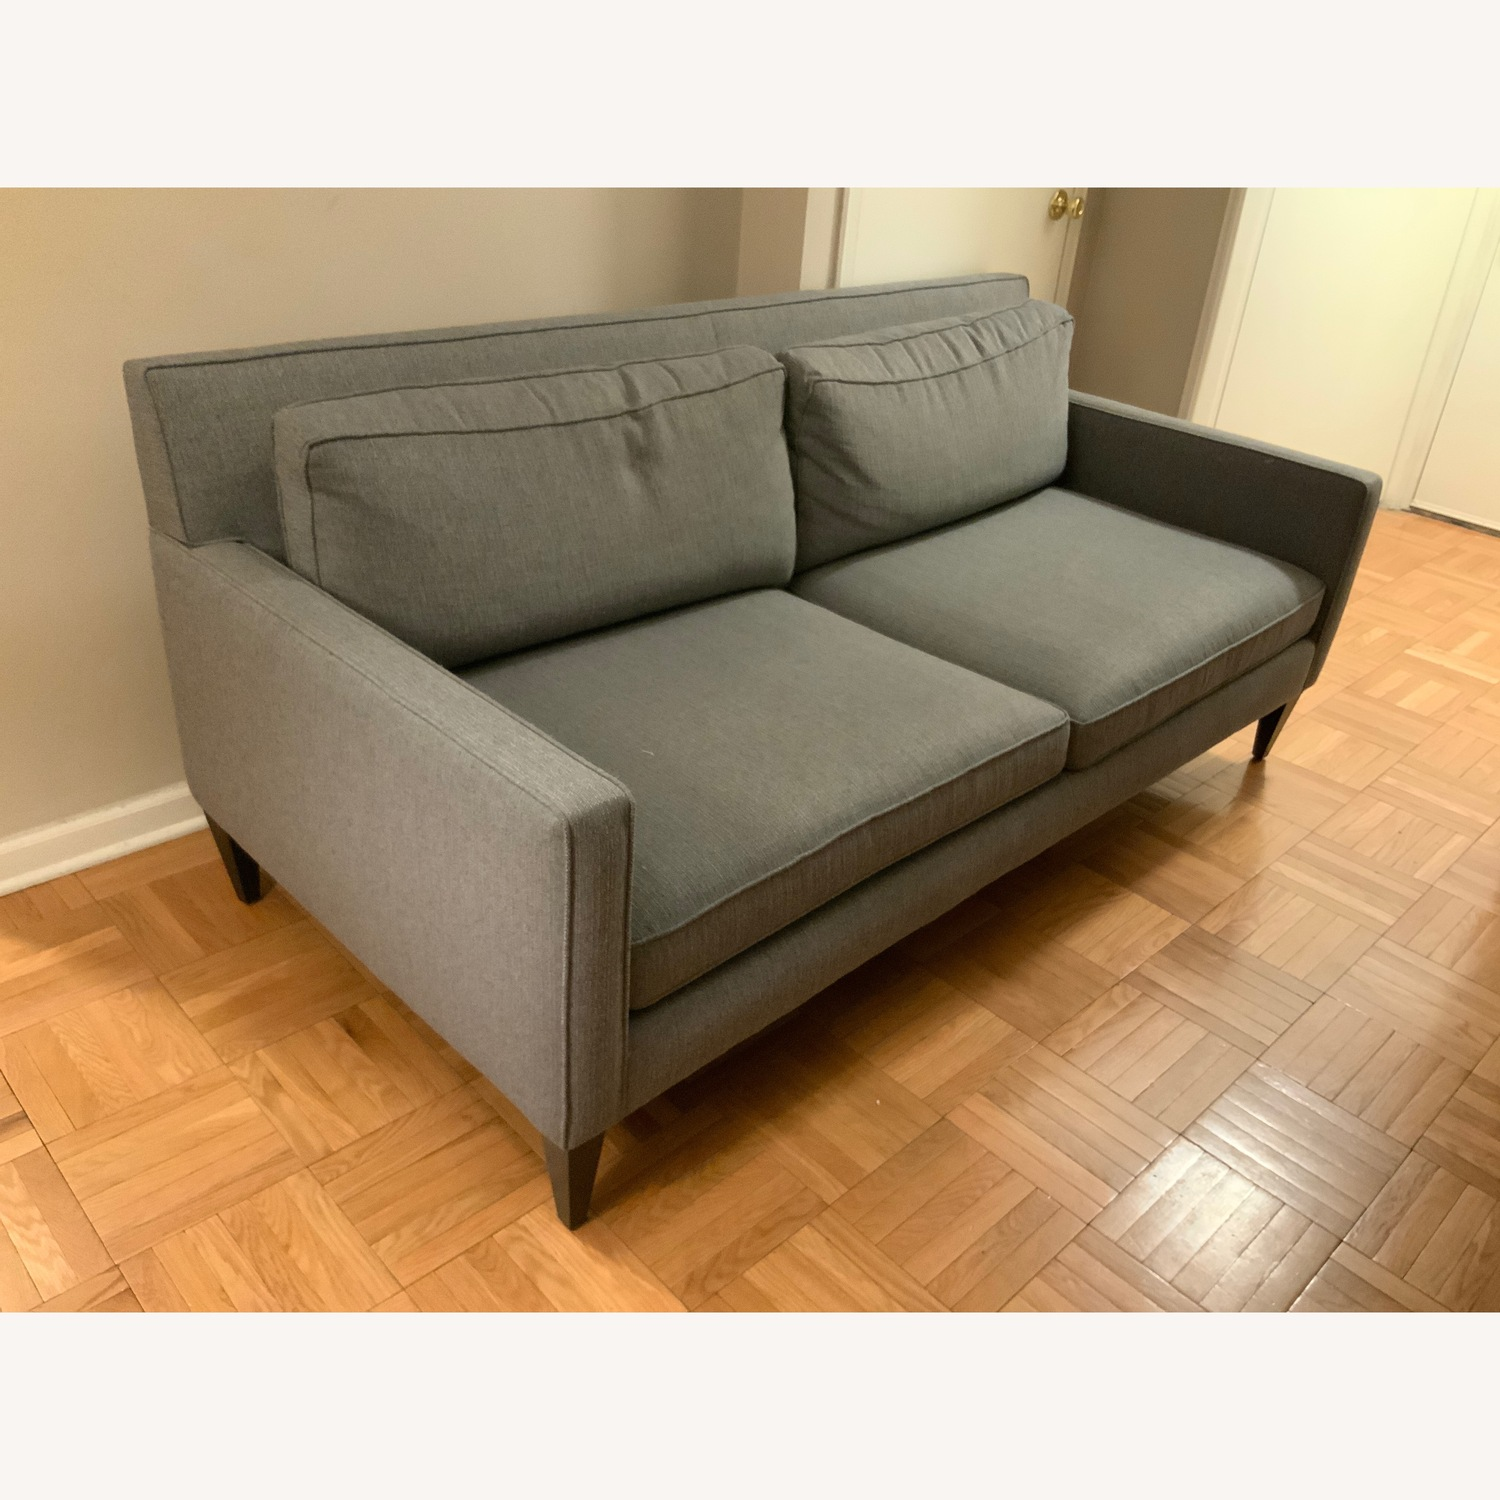 Crate & Barrel Rochelle Apartment Sofa - image-2